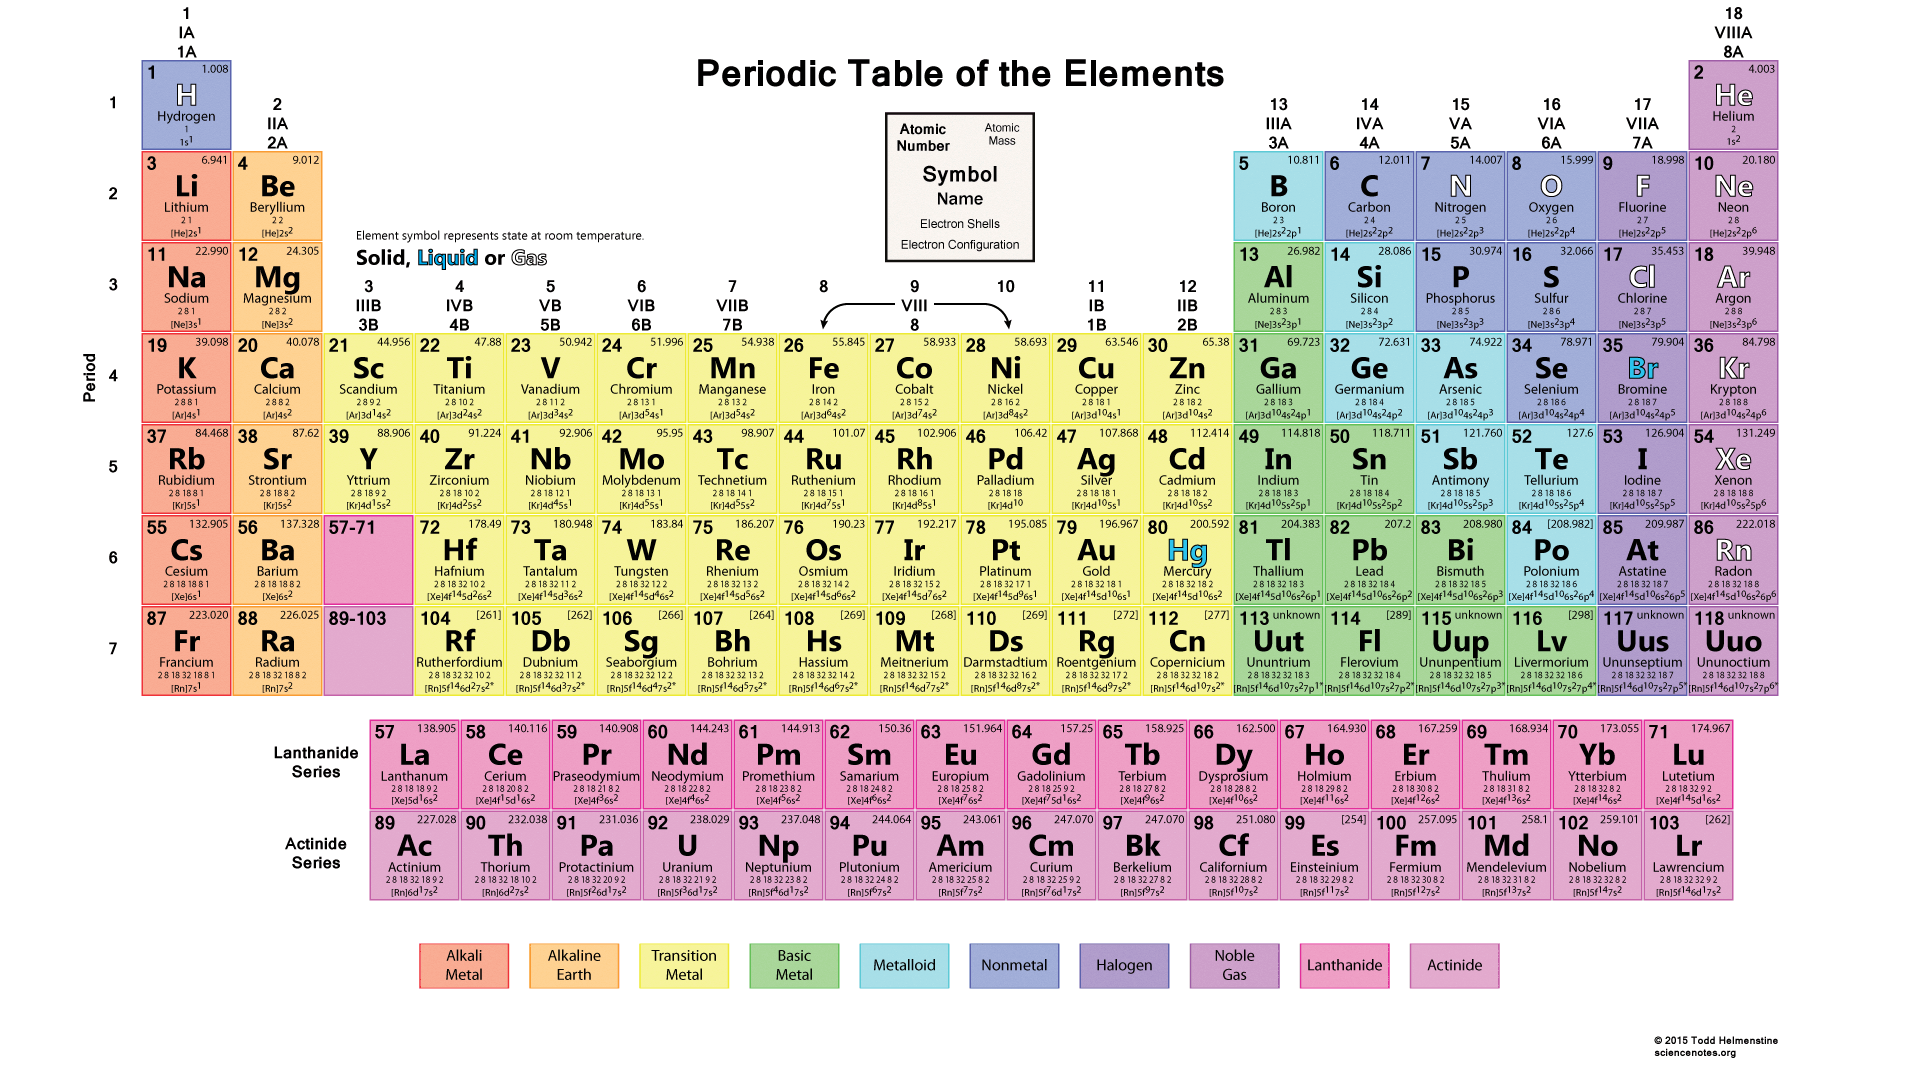 Printable periodic table of elements with everything labeled ideal printable periodic table of elements with everything labeled urtaz Images